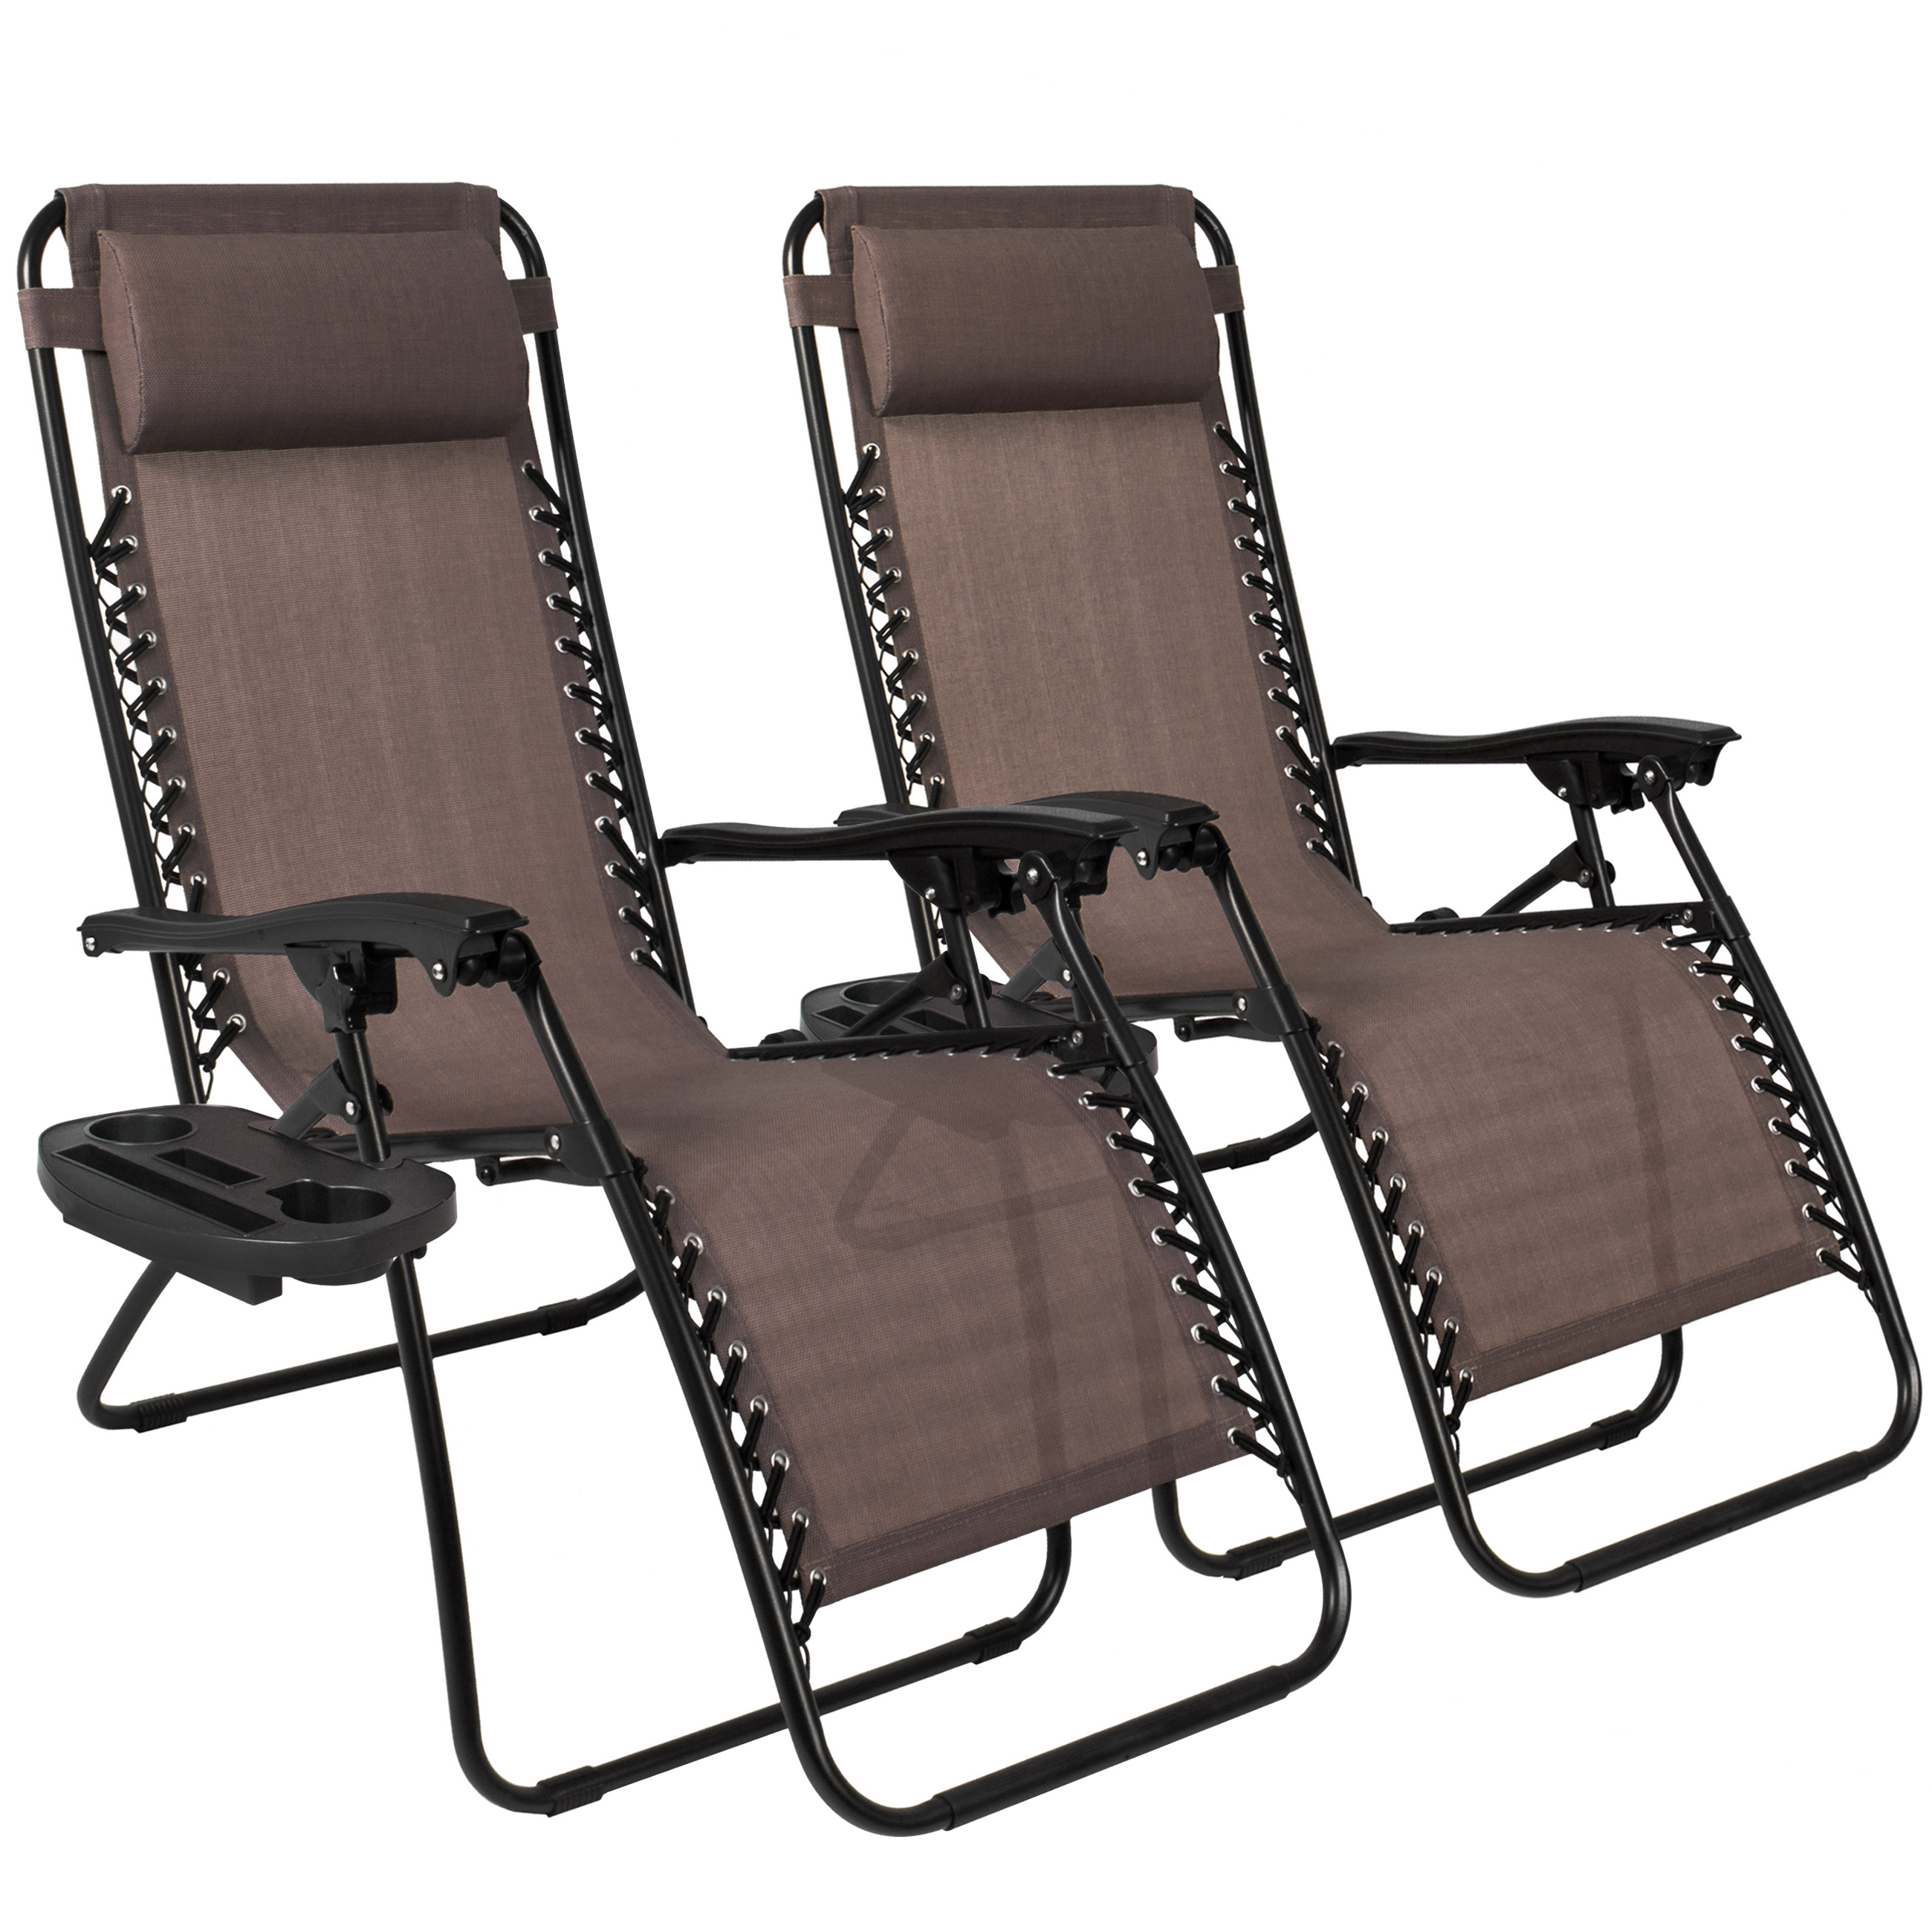 Elegant Zero Gravity Chairs Case 2 Lounge Patio Chairs Outdoor Yard Beach New Walmart New Design -  Zero Gravity Chair Set Of 2 For Your House